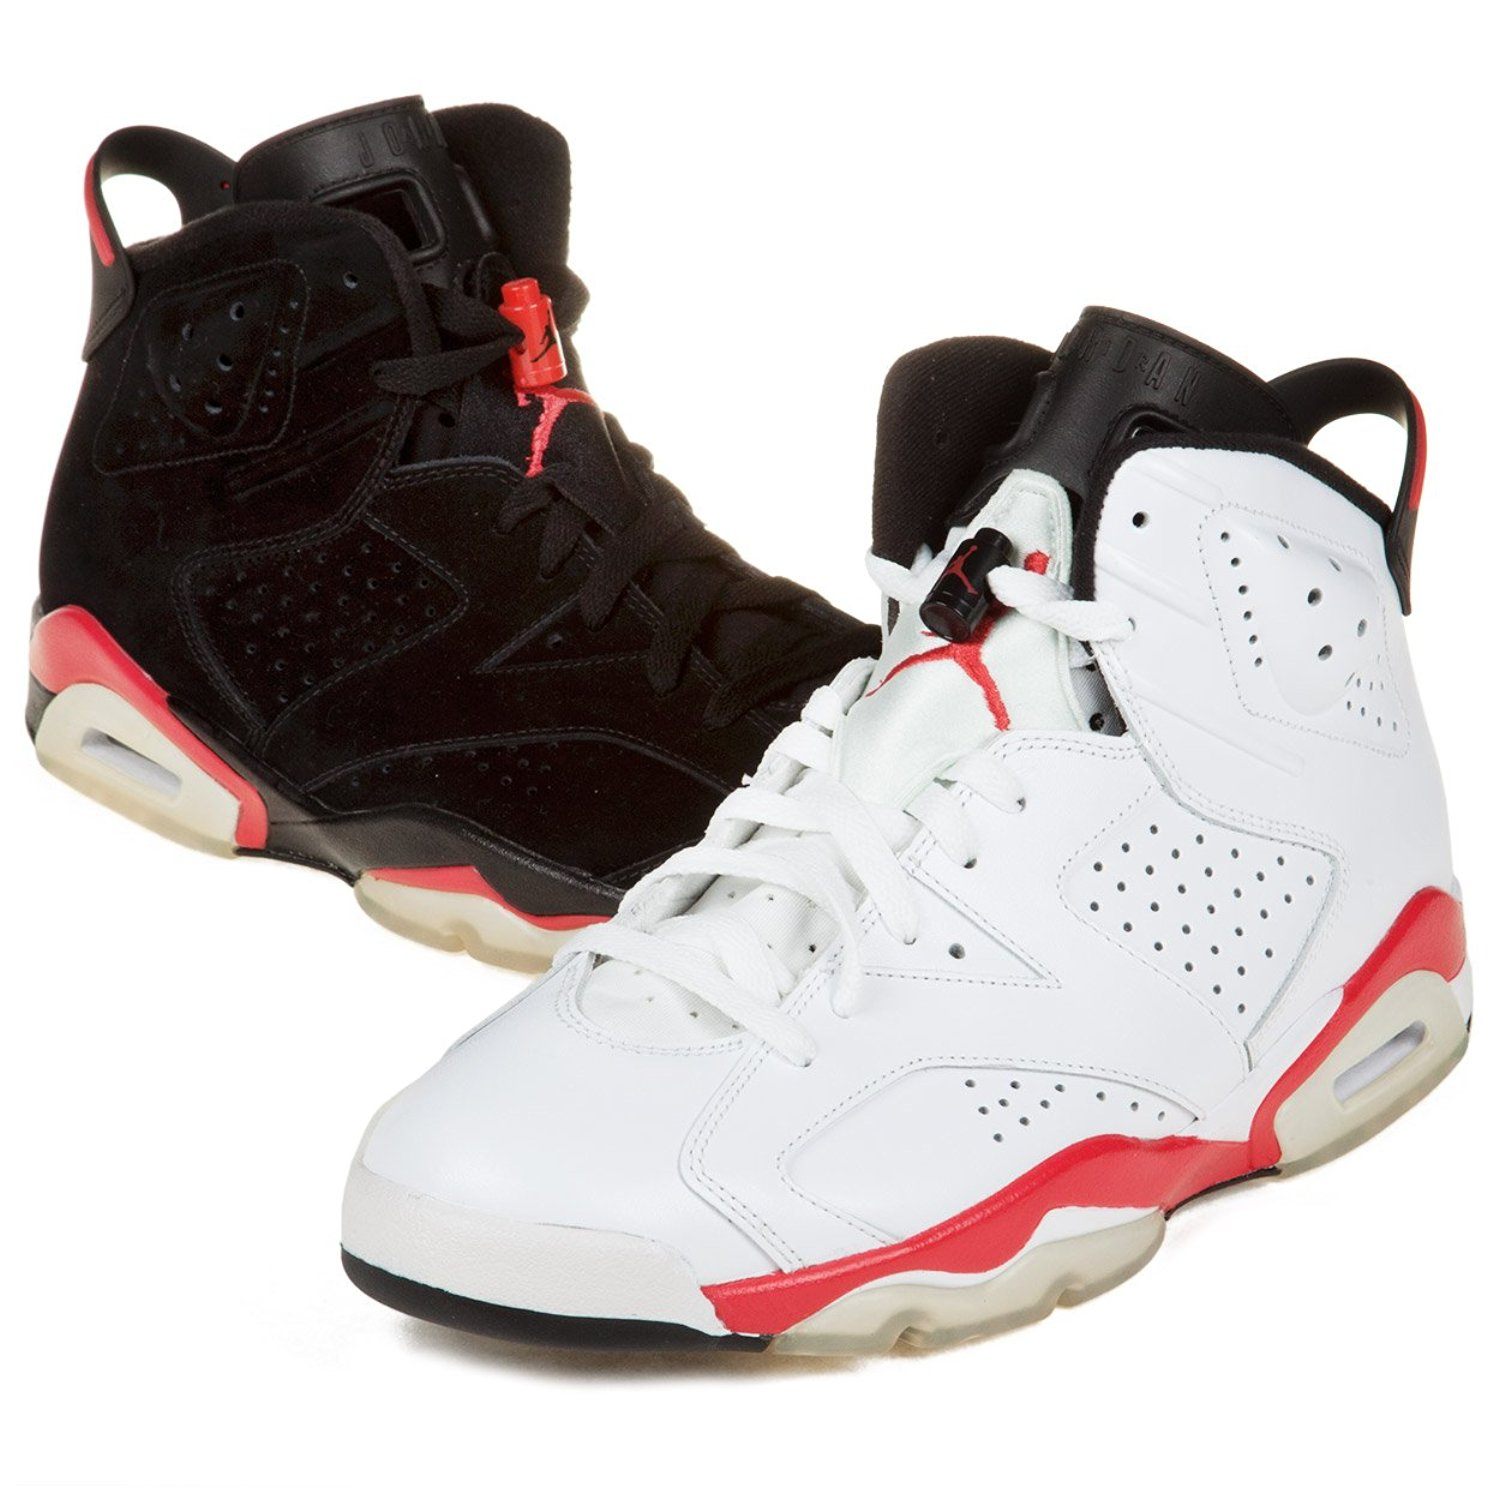 new products f1306 500b5 Get Quotations · Nike Mens Air Jordan 6 AJ6 Infrared Pack Synthetic  Basketball Shoes